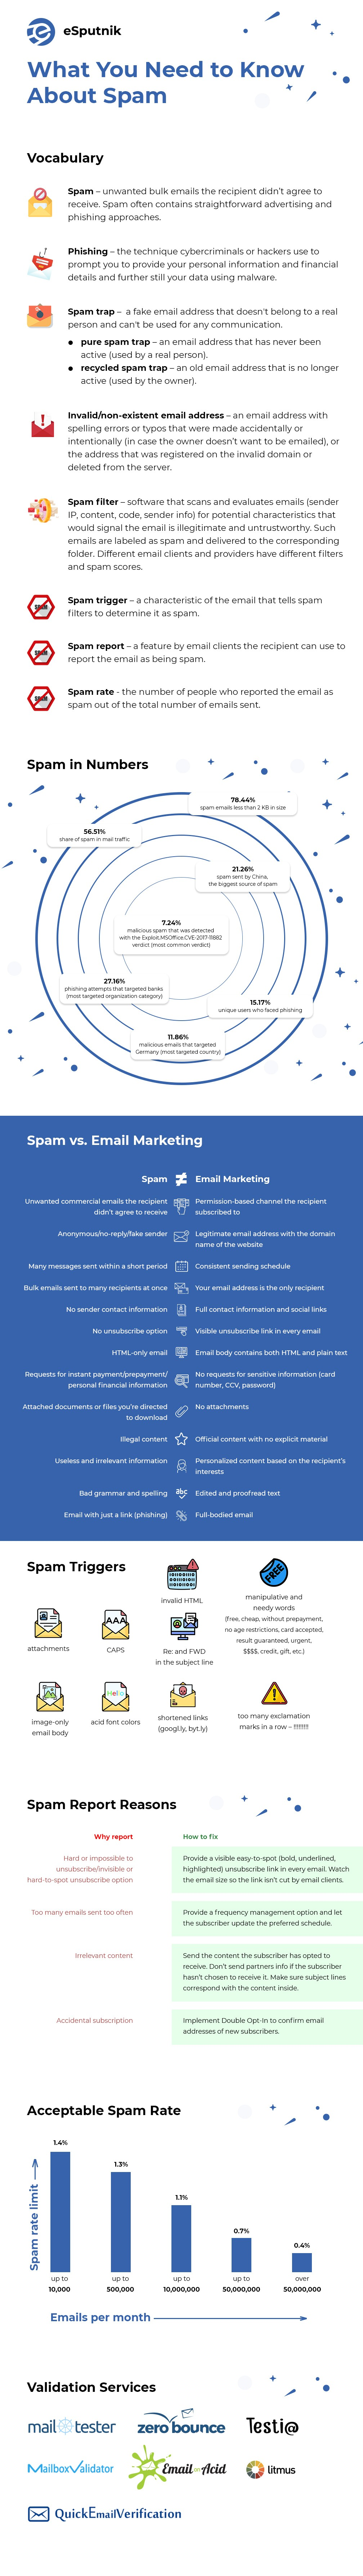 What you need to know about spam